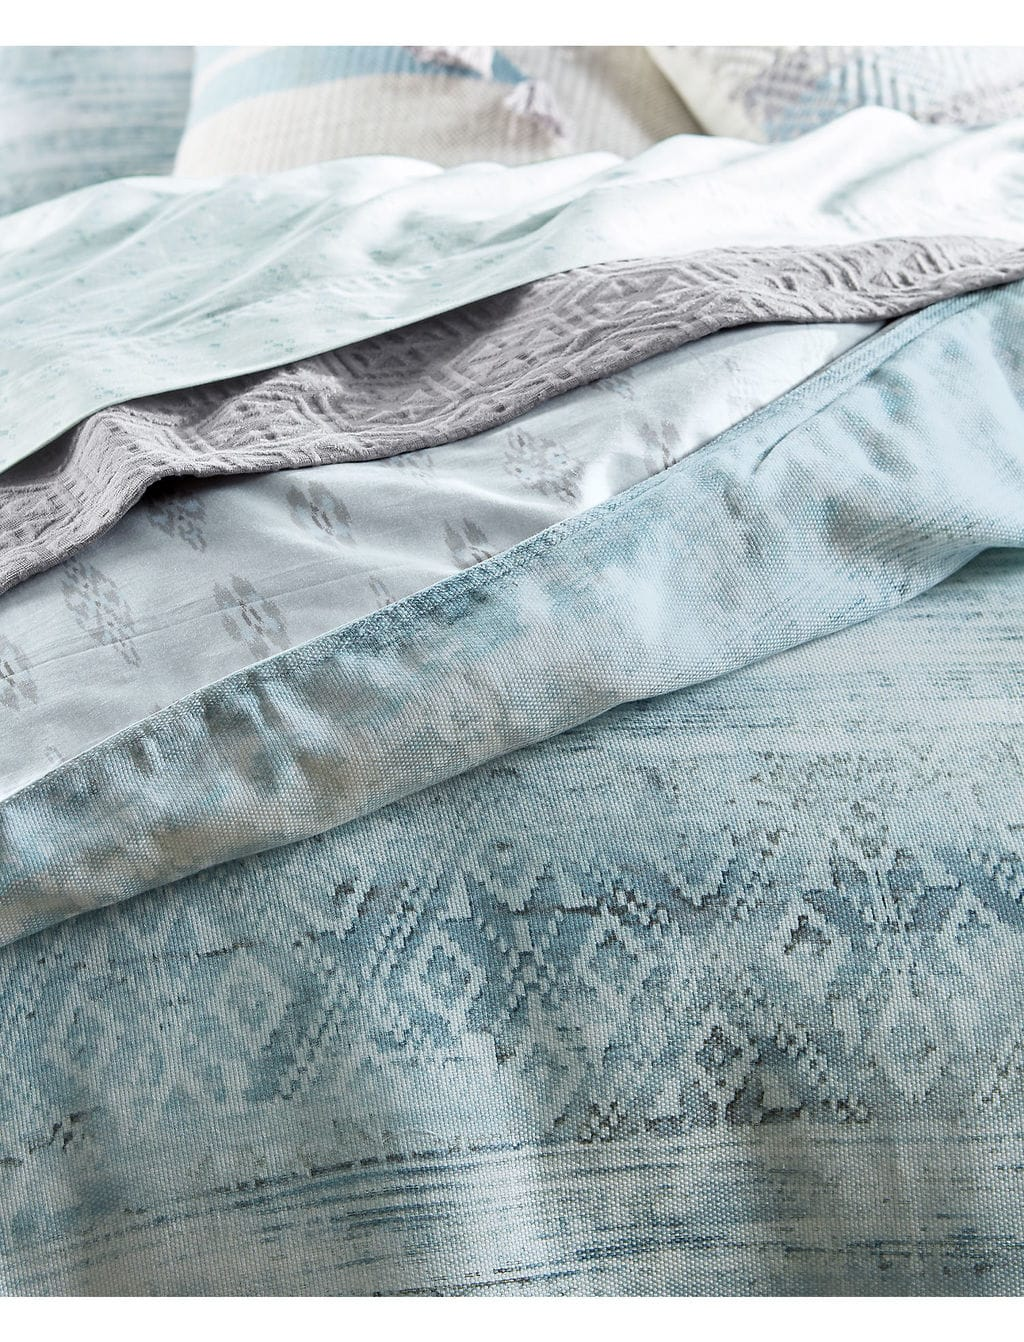 Lucky Brand's calm ocean blue cotton sheet set with light pressed dot patterns.